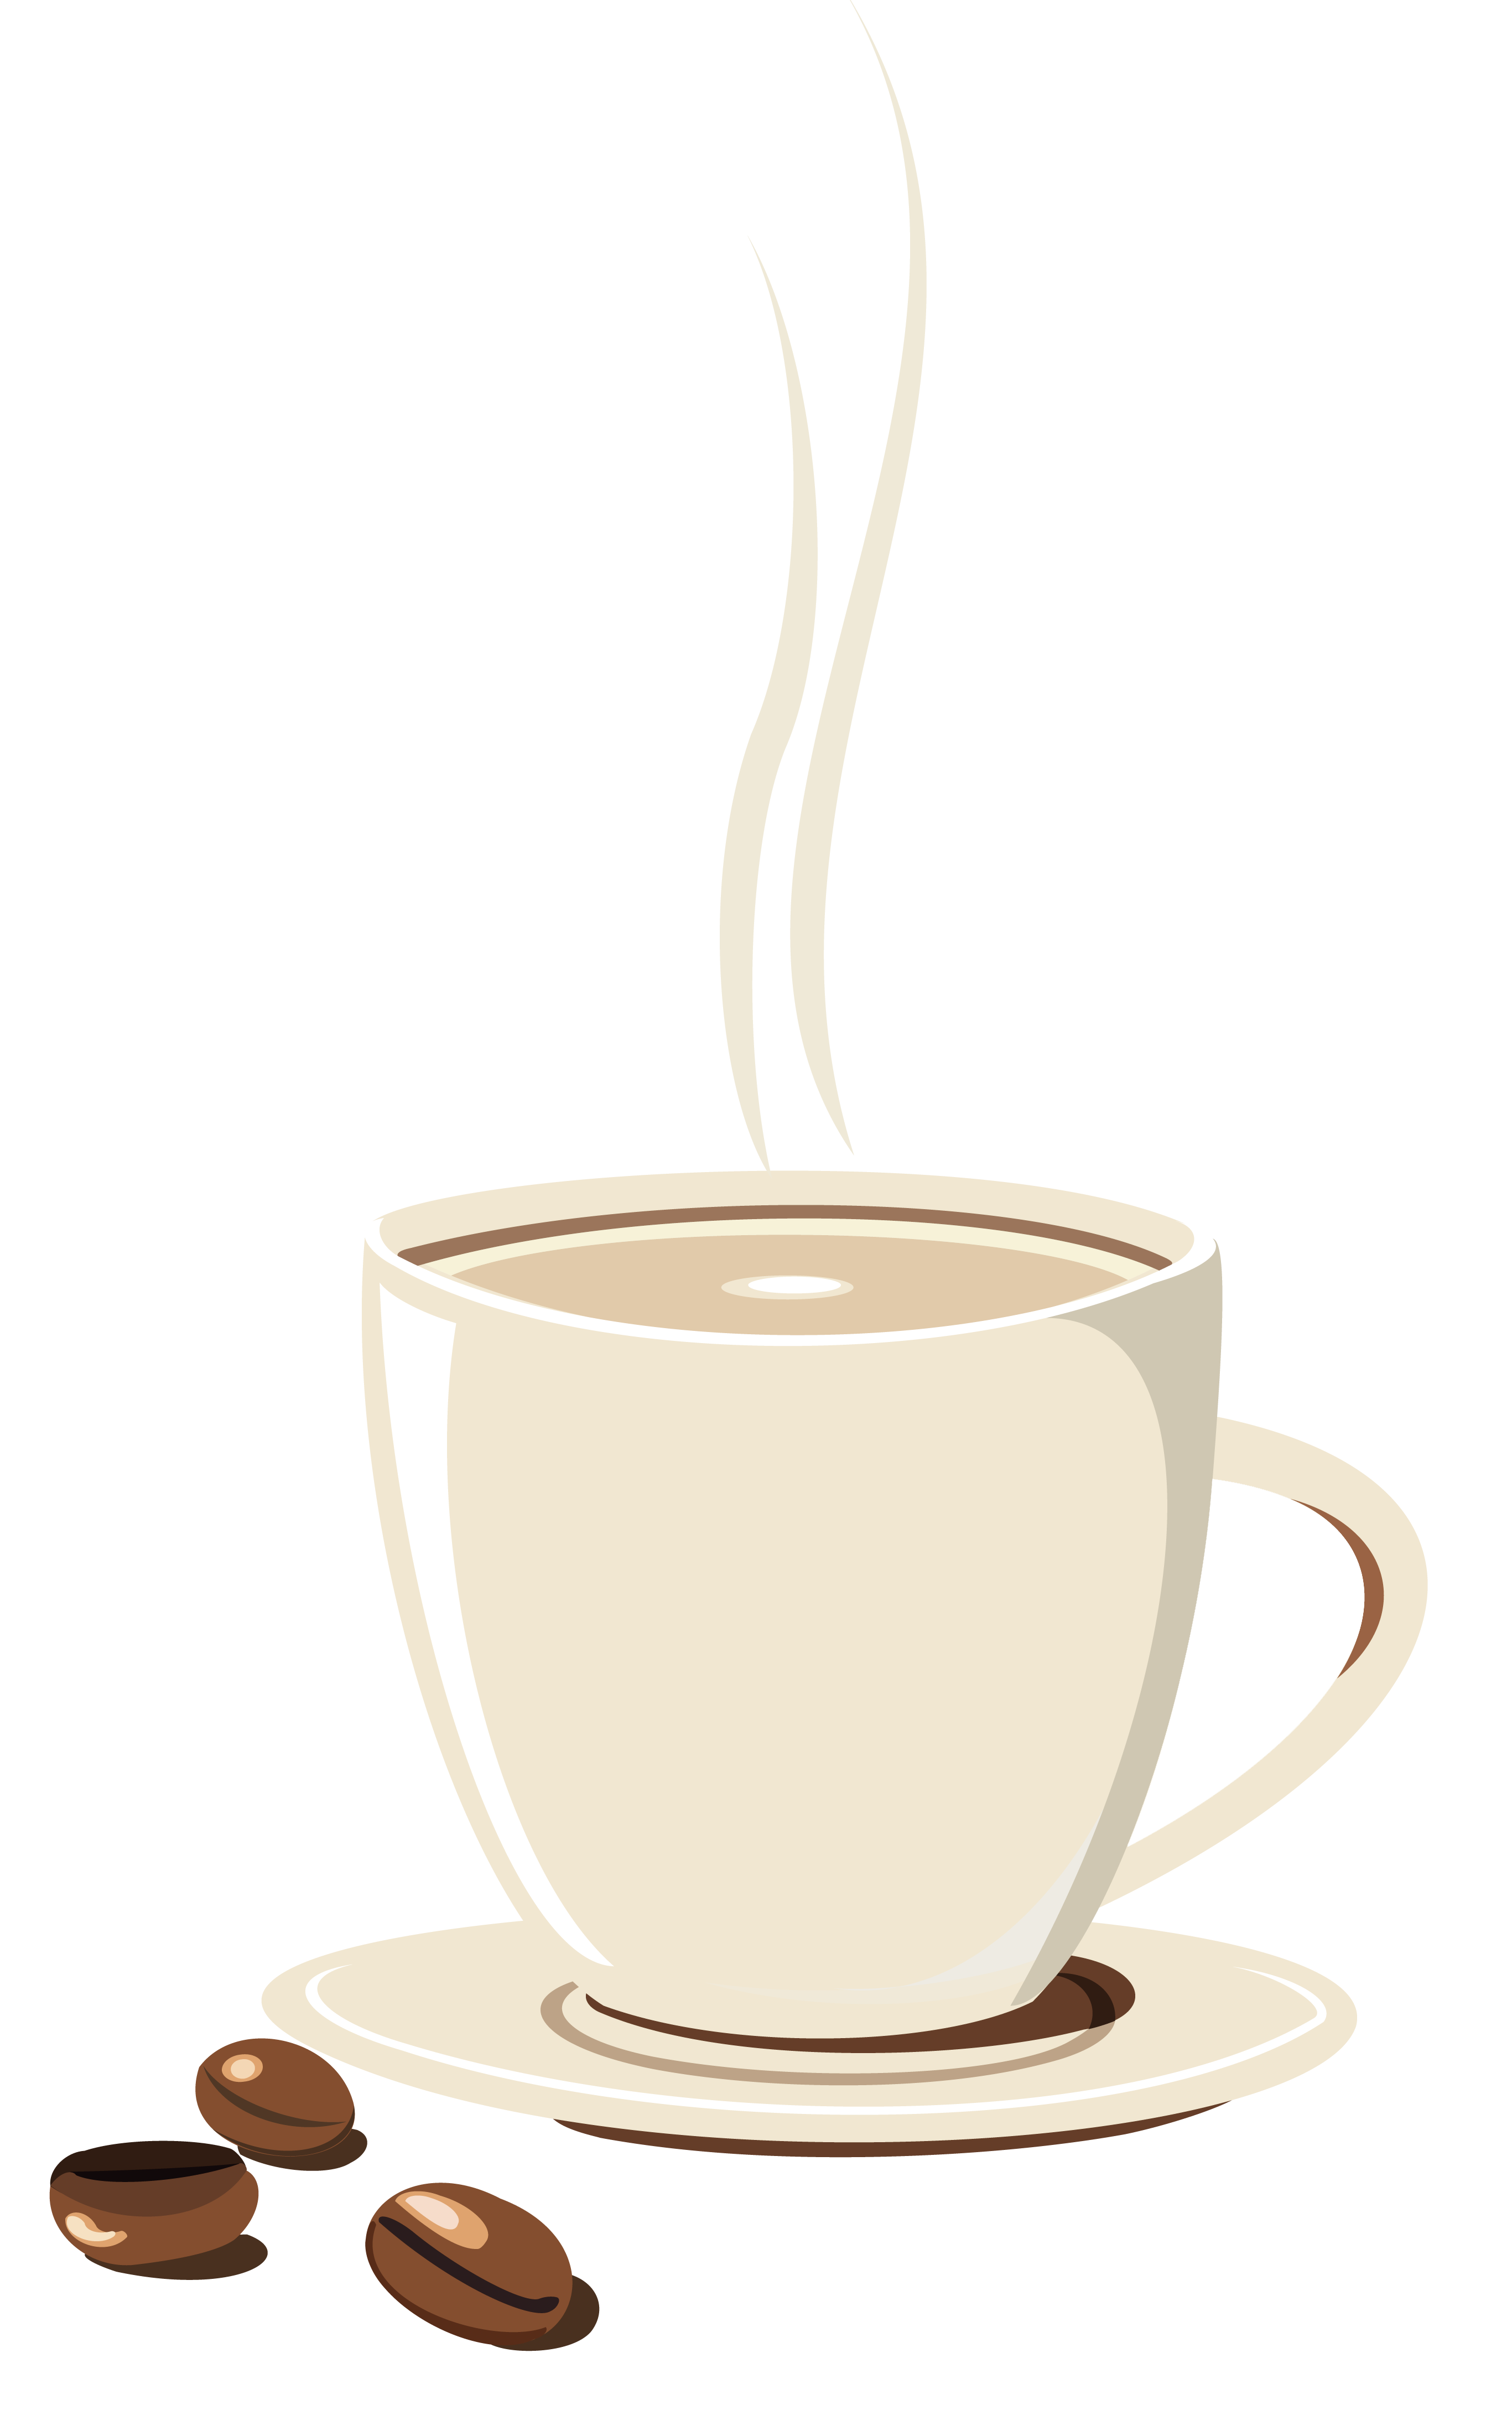 Coffee Cup Png Picture Png 2733 4364 Coffee Cup Design Coffee Cups Coffee Cup Art